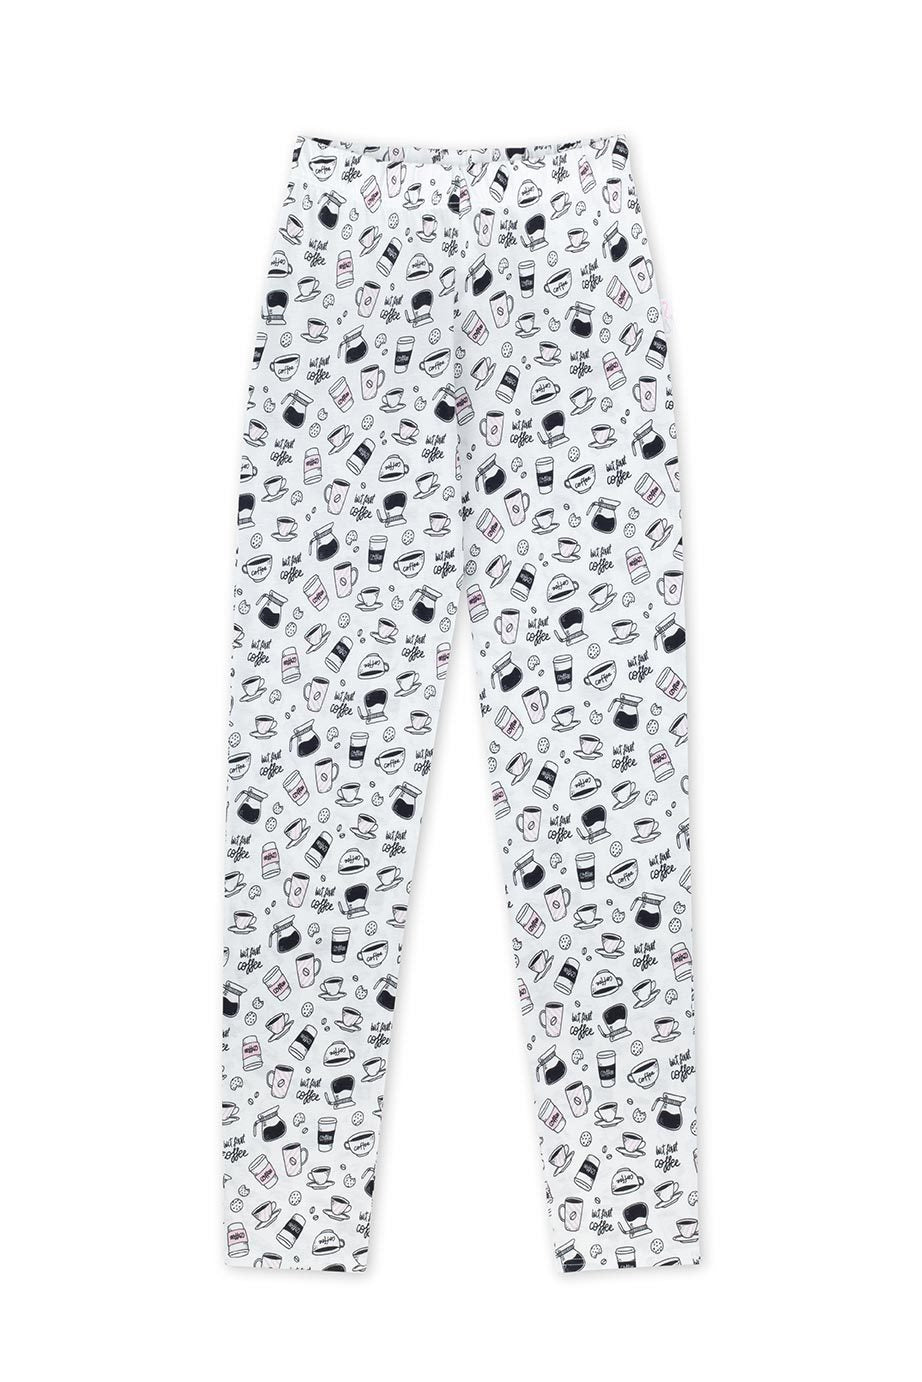 but first coffee-pyjamahose fuer damen-100 prozent baumwolle-made in eu